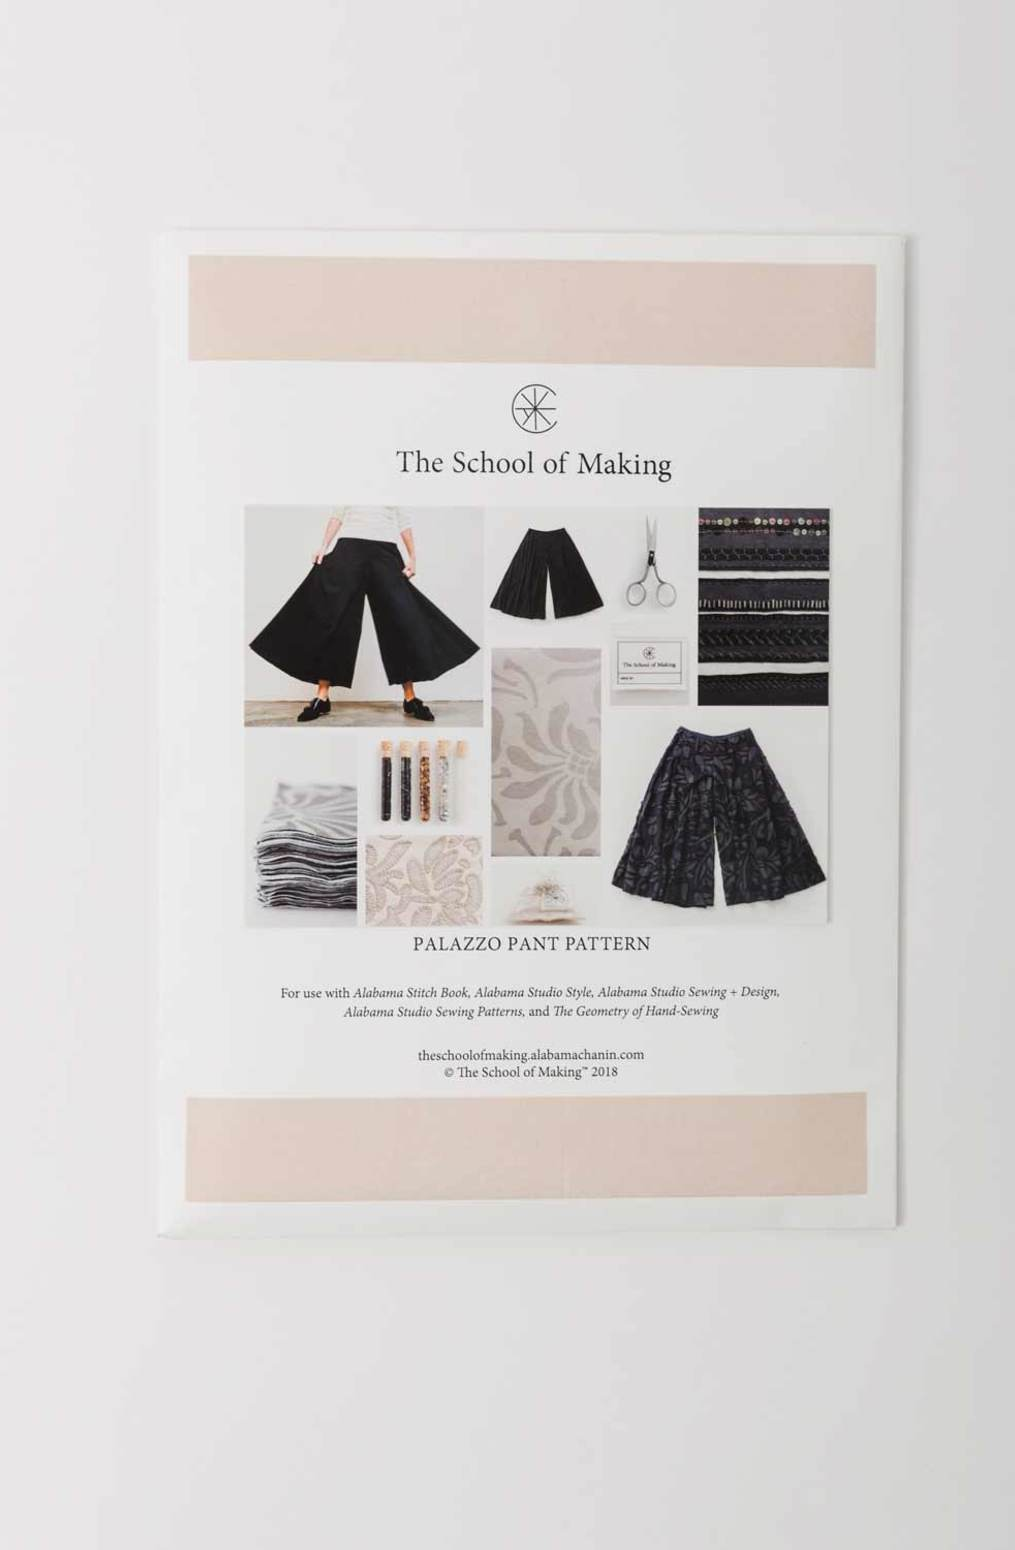 The school of making   build a wardrobe   palazzo pant pattern   september 2019   abraham rowe 13